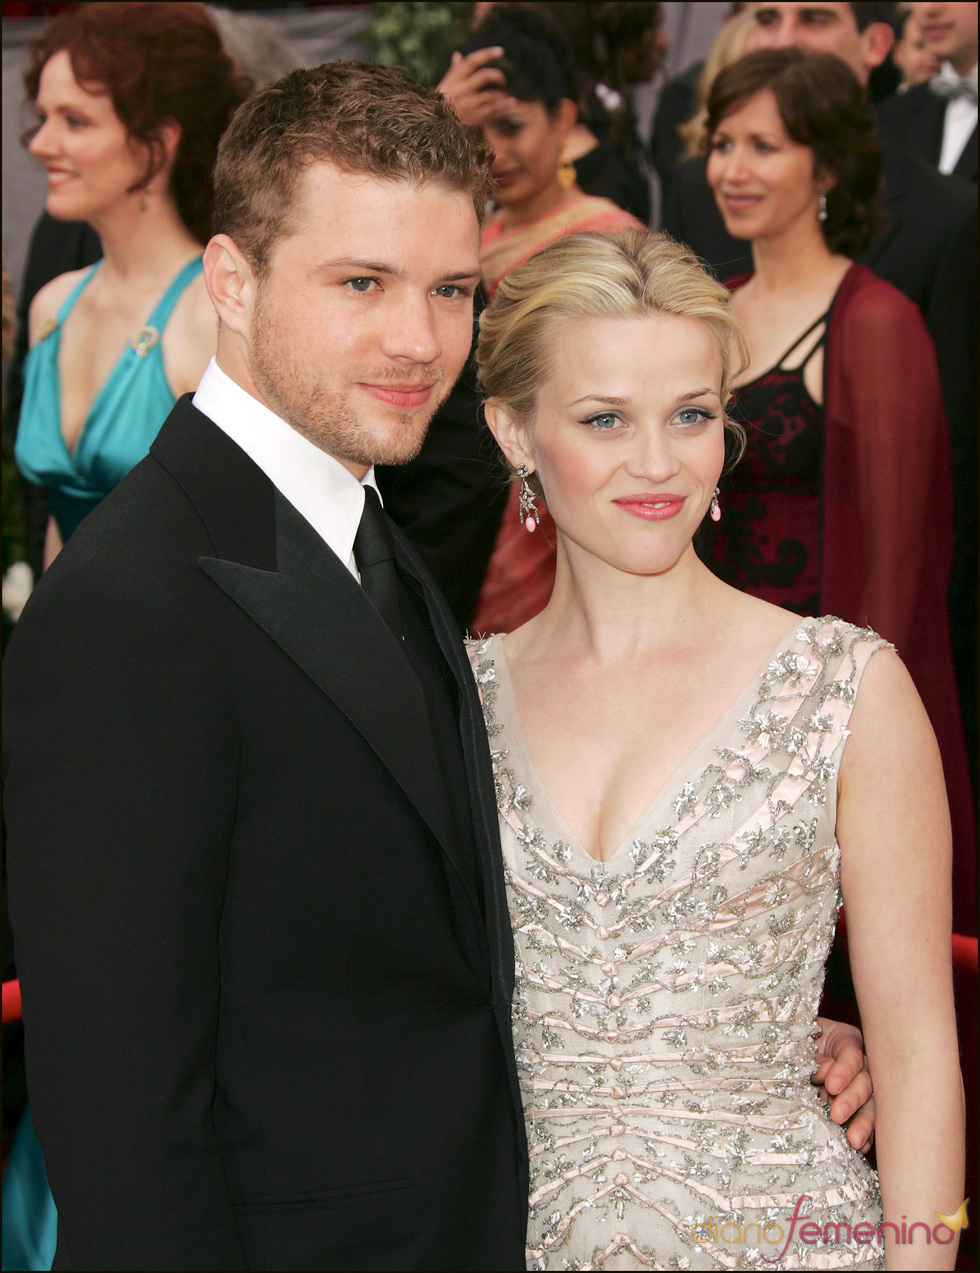 8. Reese Witherspoon & Ryan Phillippe - Divorced - TheRichest